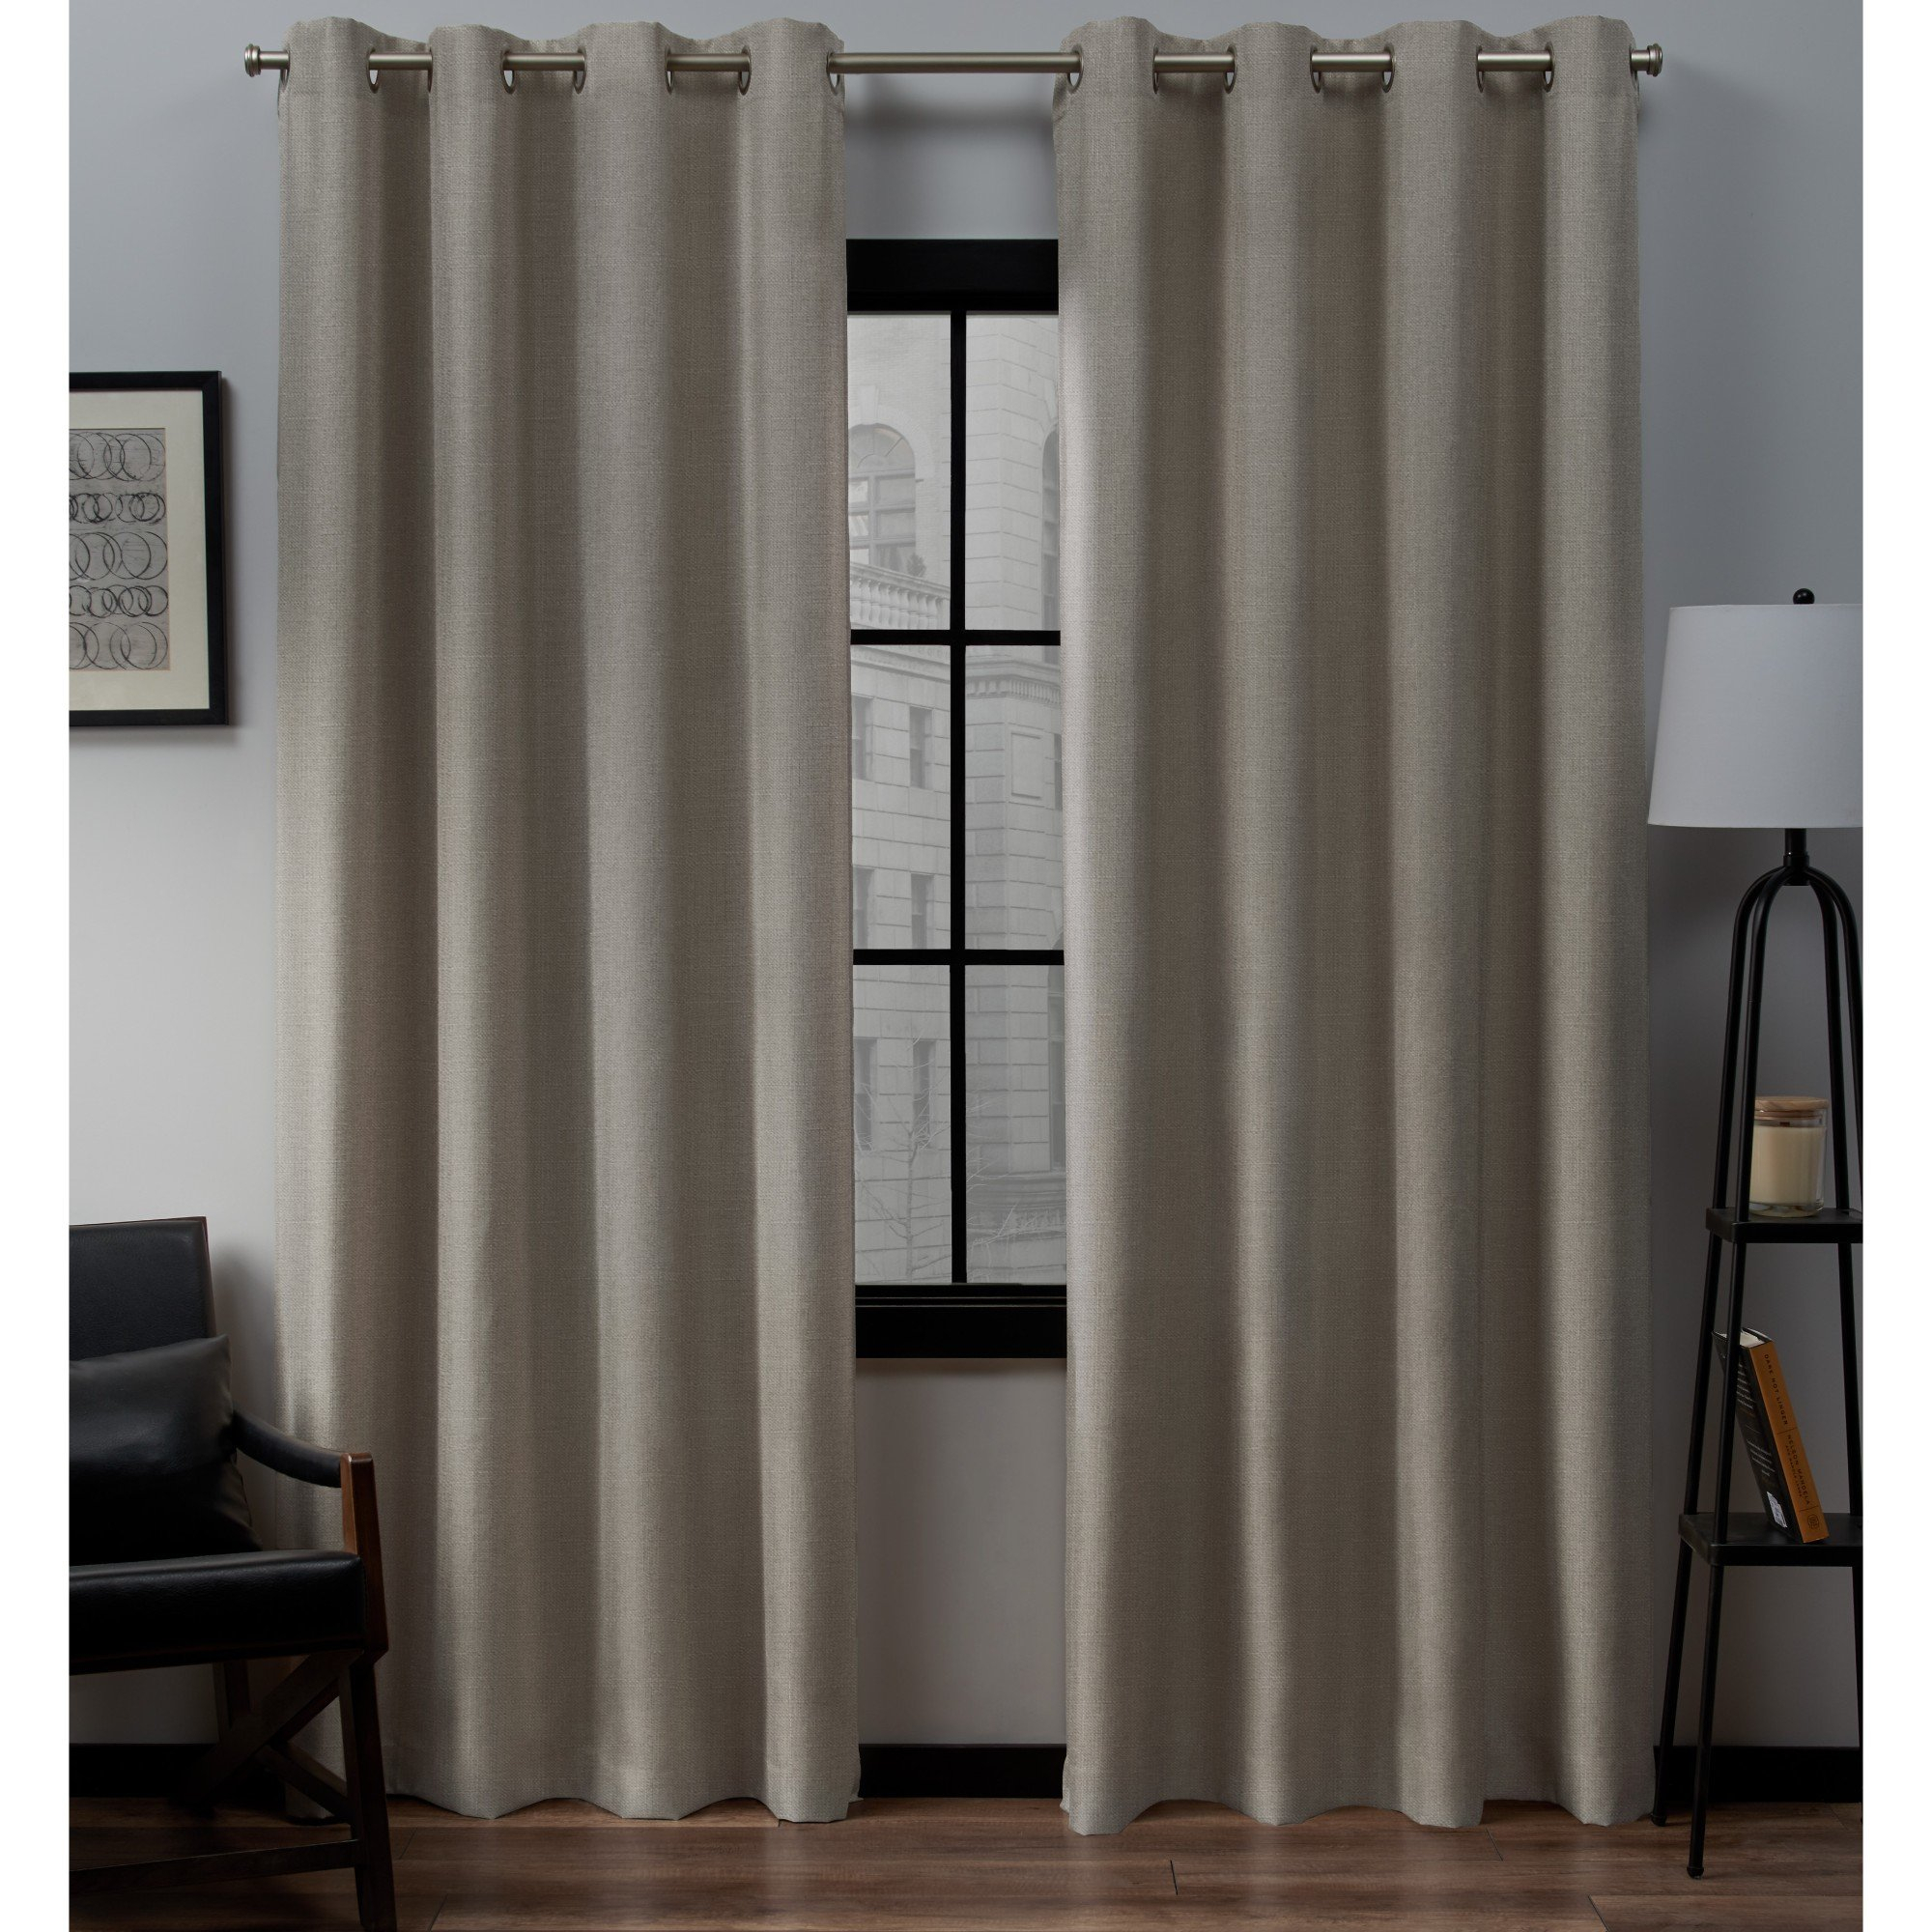 Ideas: Sensational Grommet Curtain Panels With Inspiring Within Superior Leaves Insulated Thermal Blackout Grommet Curtain Panel Pairs (View 10 of 30)